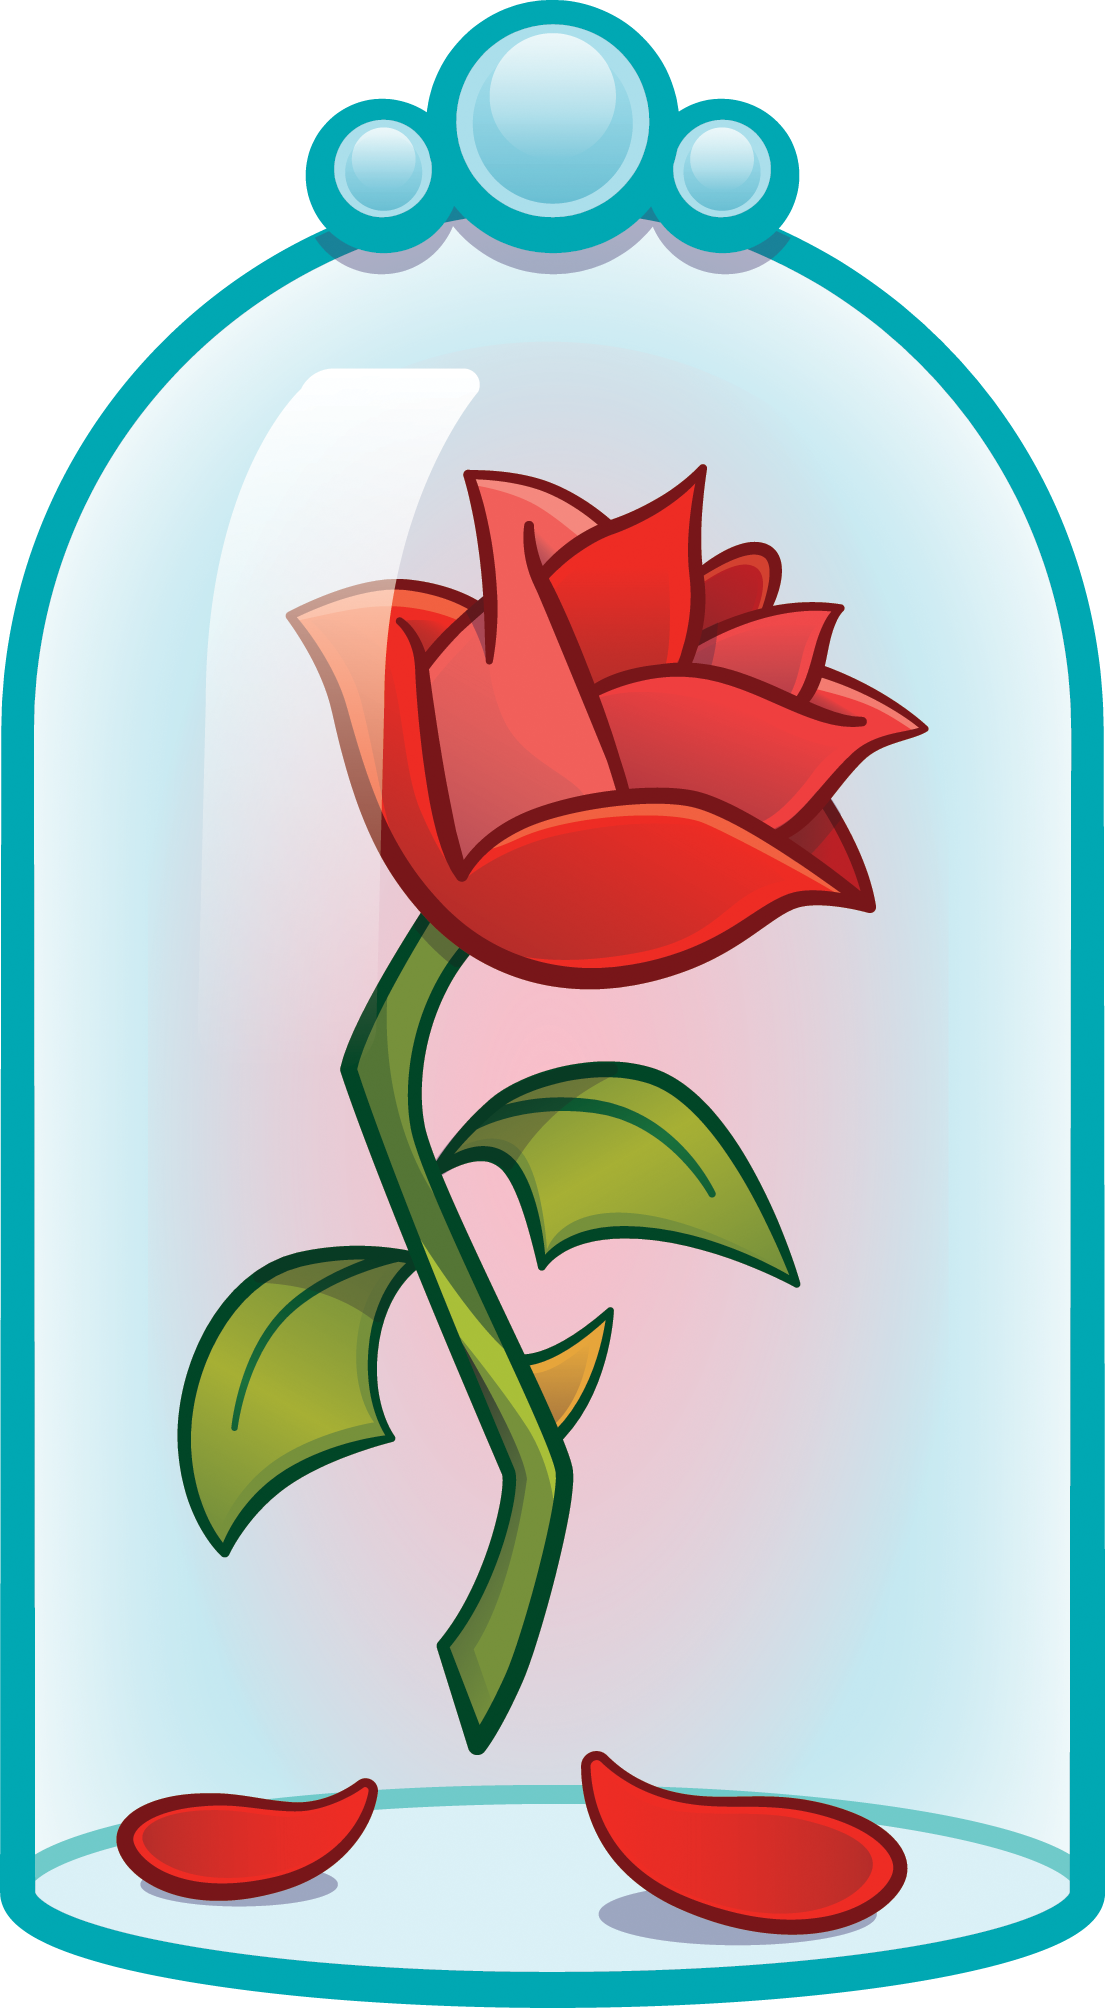 Flor de la bella y la bestia clipart graphic free download The enchanted rose [as an emoji] (Drawing by Disney ... graphic free download